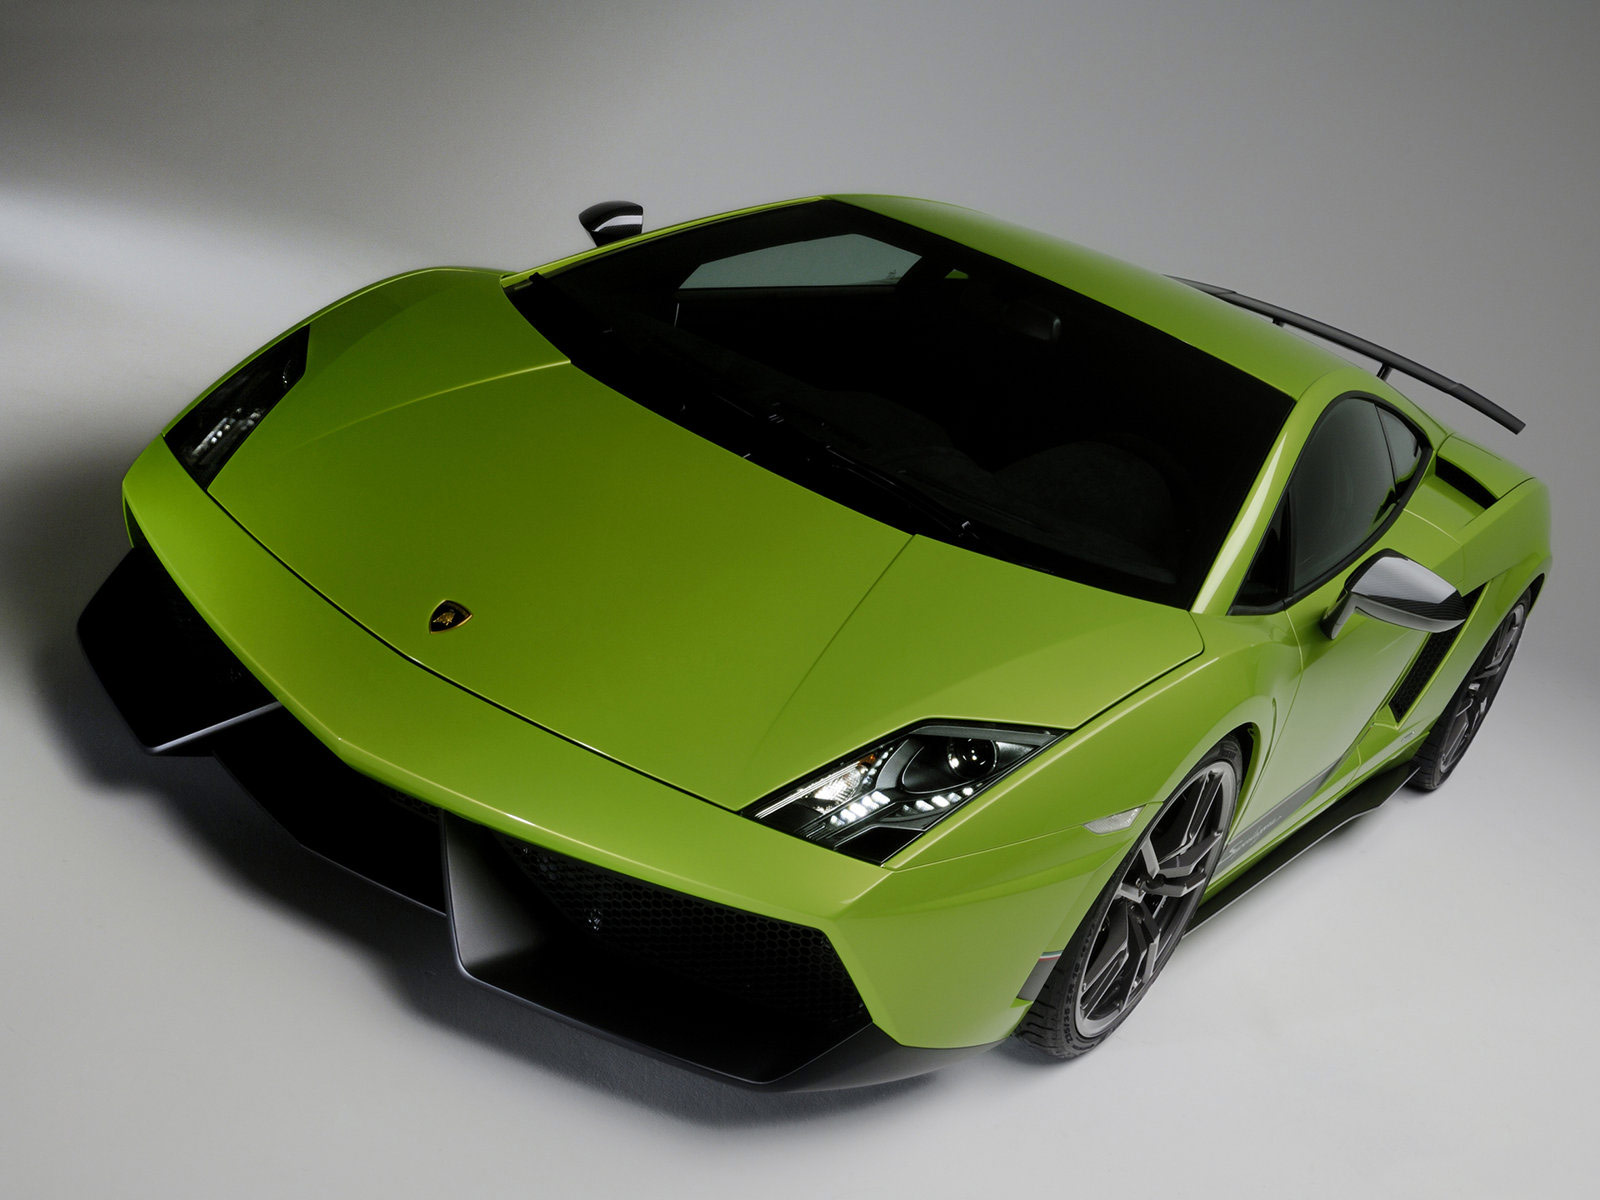 ... Lamborghini-Gallardo-LP570-4-Superleggera_2011_04.jpg ...